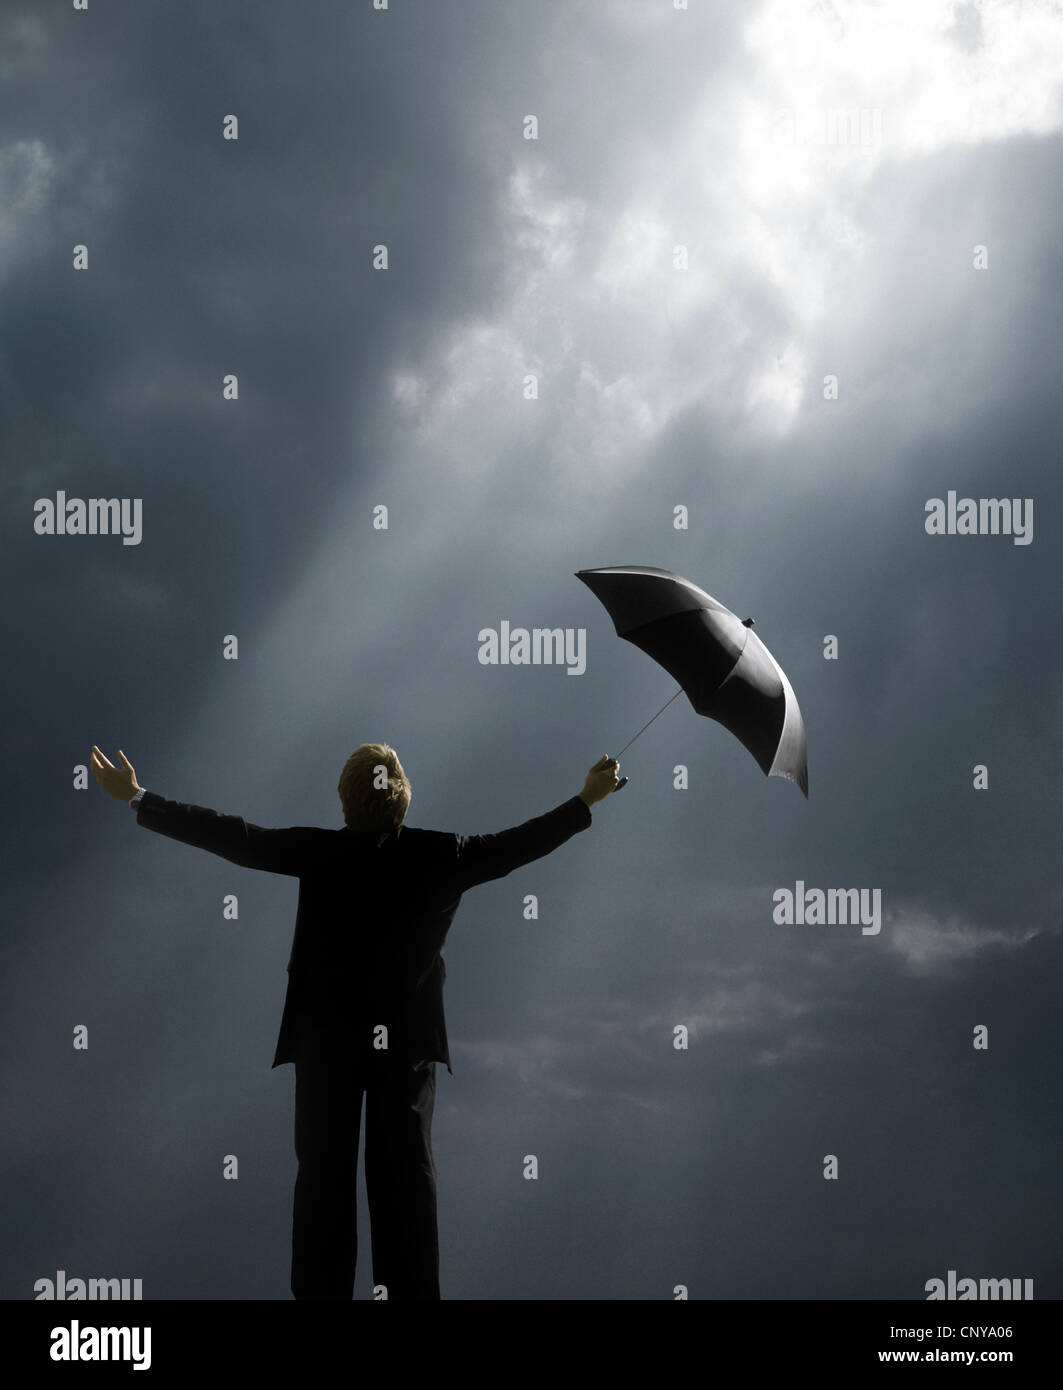 Man holding umbrella standing in sunlight rays - Stock Image